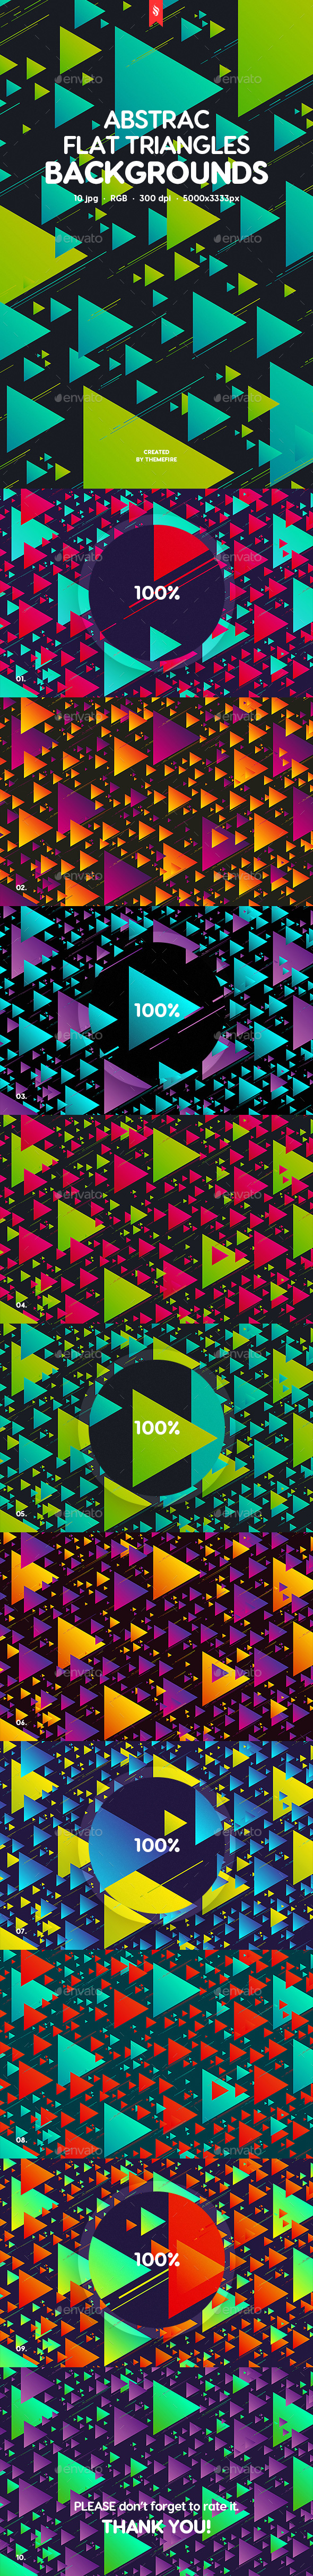 Abstract Flat Triangles Backgrounds - Patterns Backgrounds